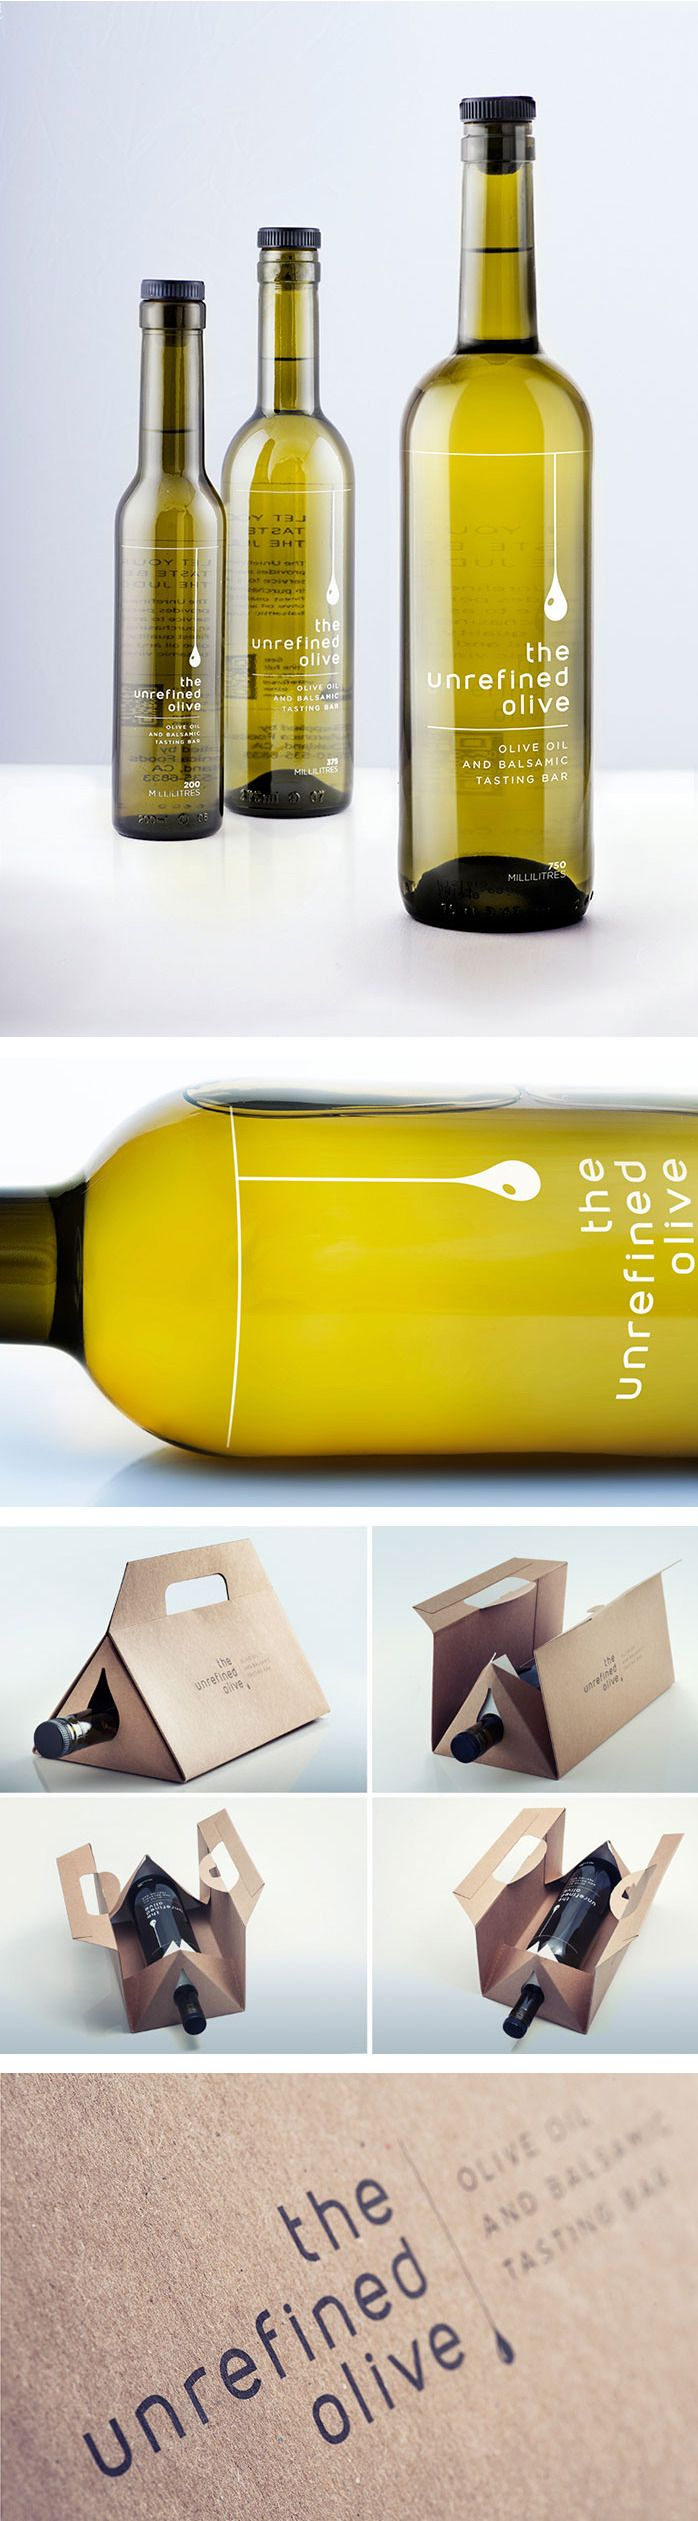 The Unrefined Olive Oil - the typography is lackluster, but that carrying case is pretty clever.